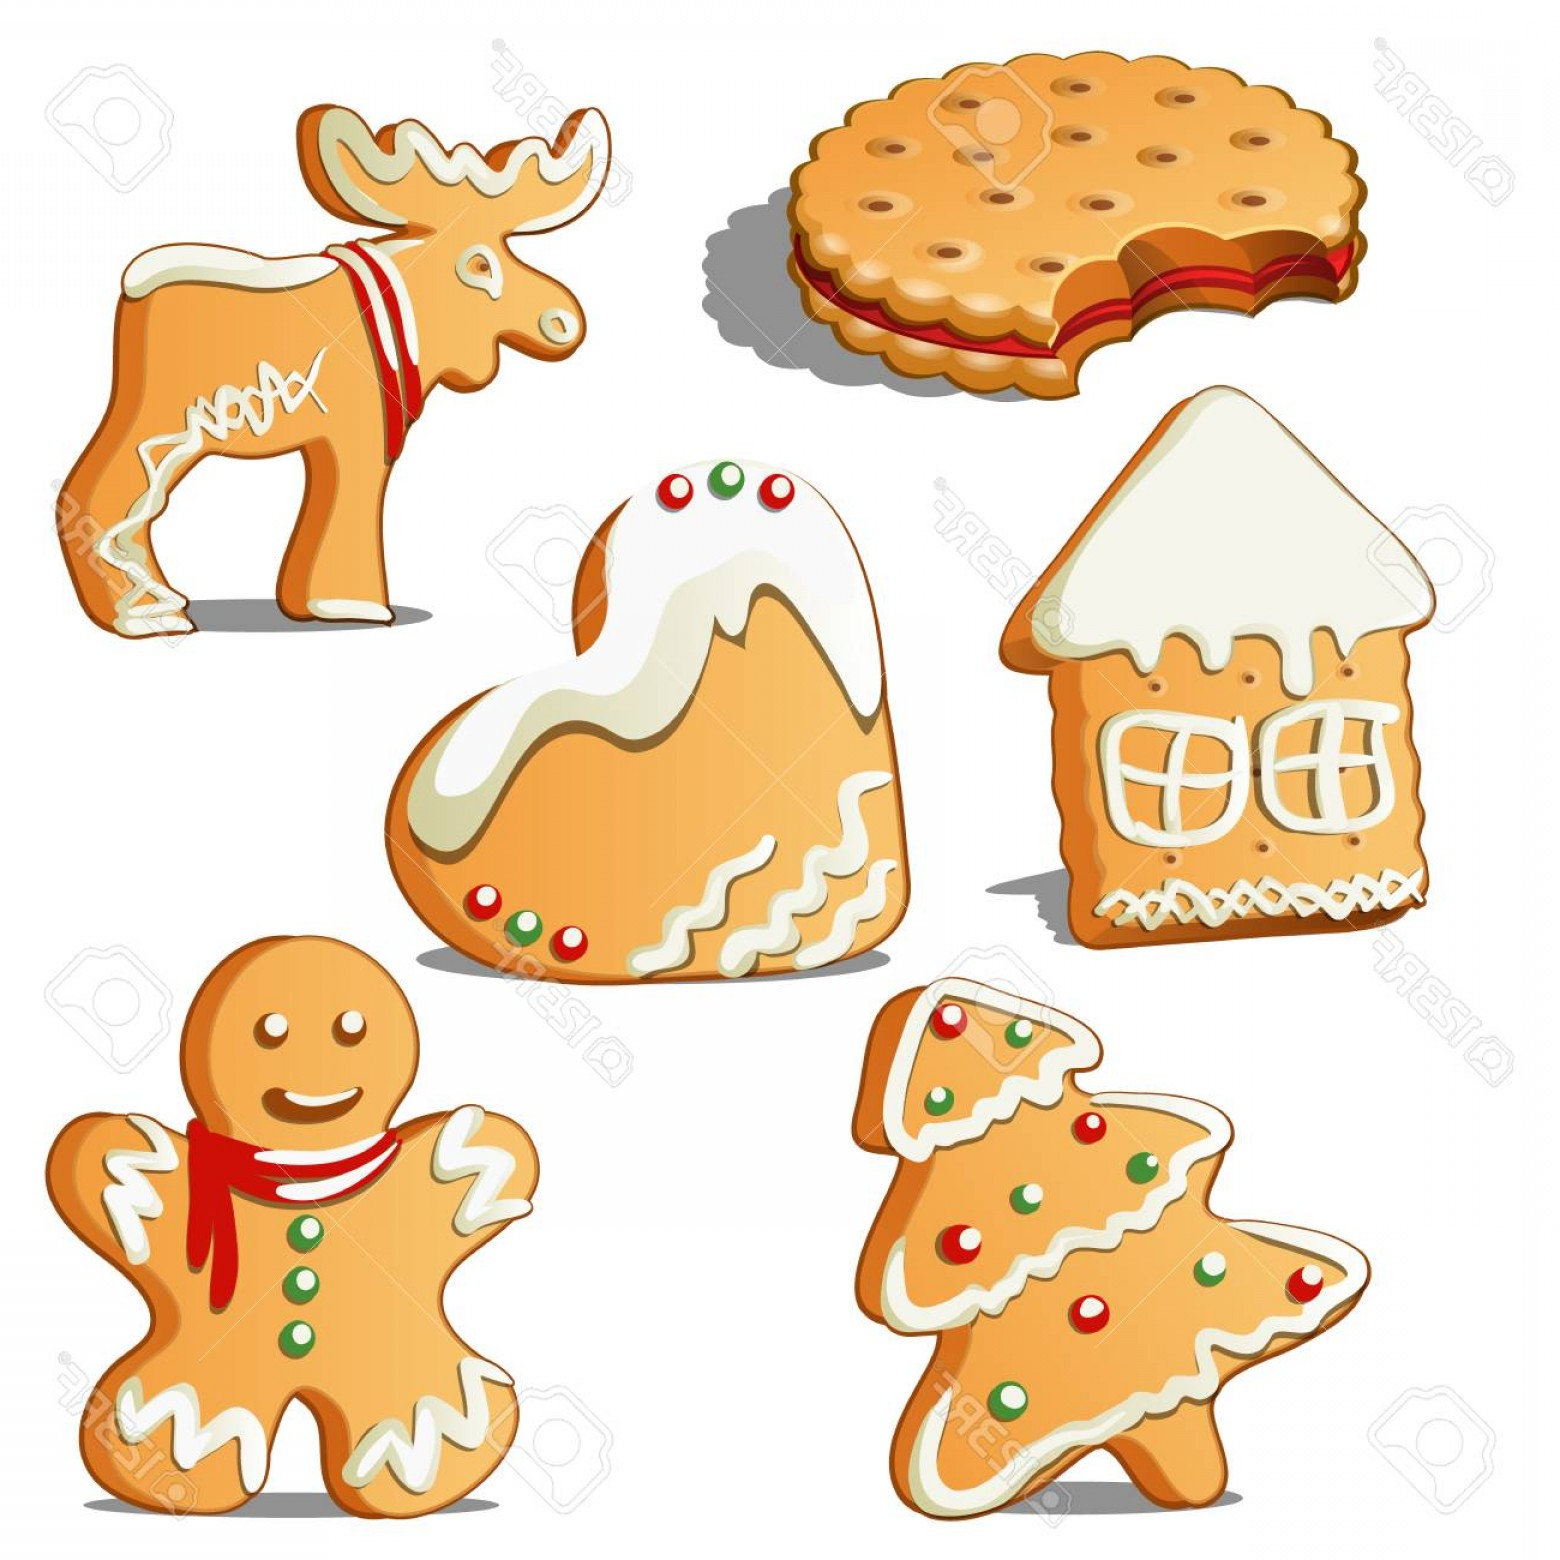 Vectors Holiday Baking: Photostock Vector Sweet Holiday Baking Cookies In Form Of A Star House Christmas Tree Heart Reindeer Gingerbread Man W